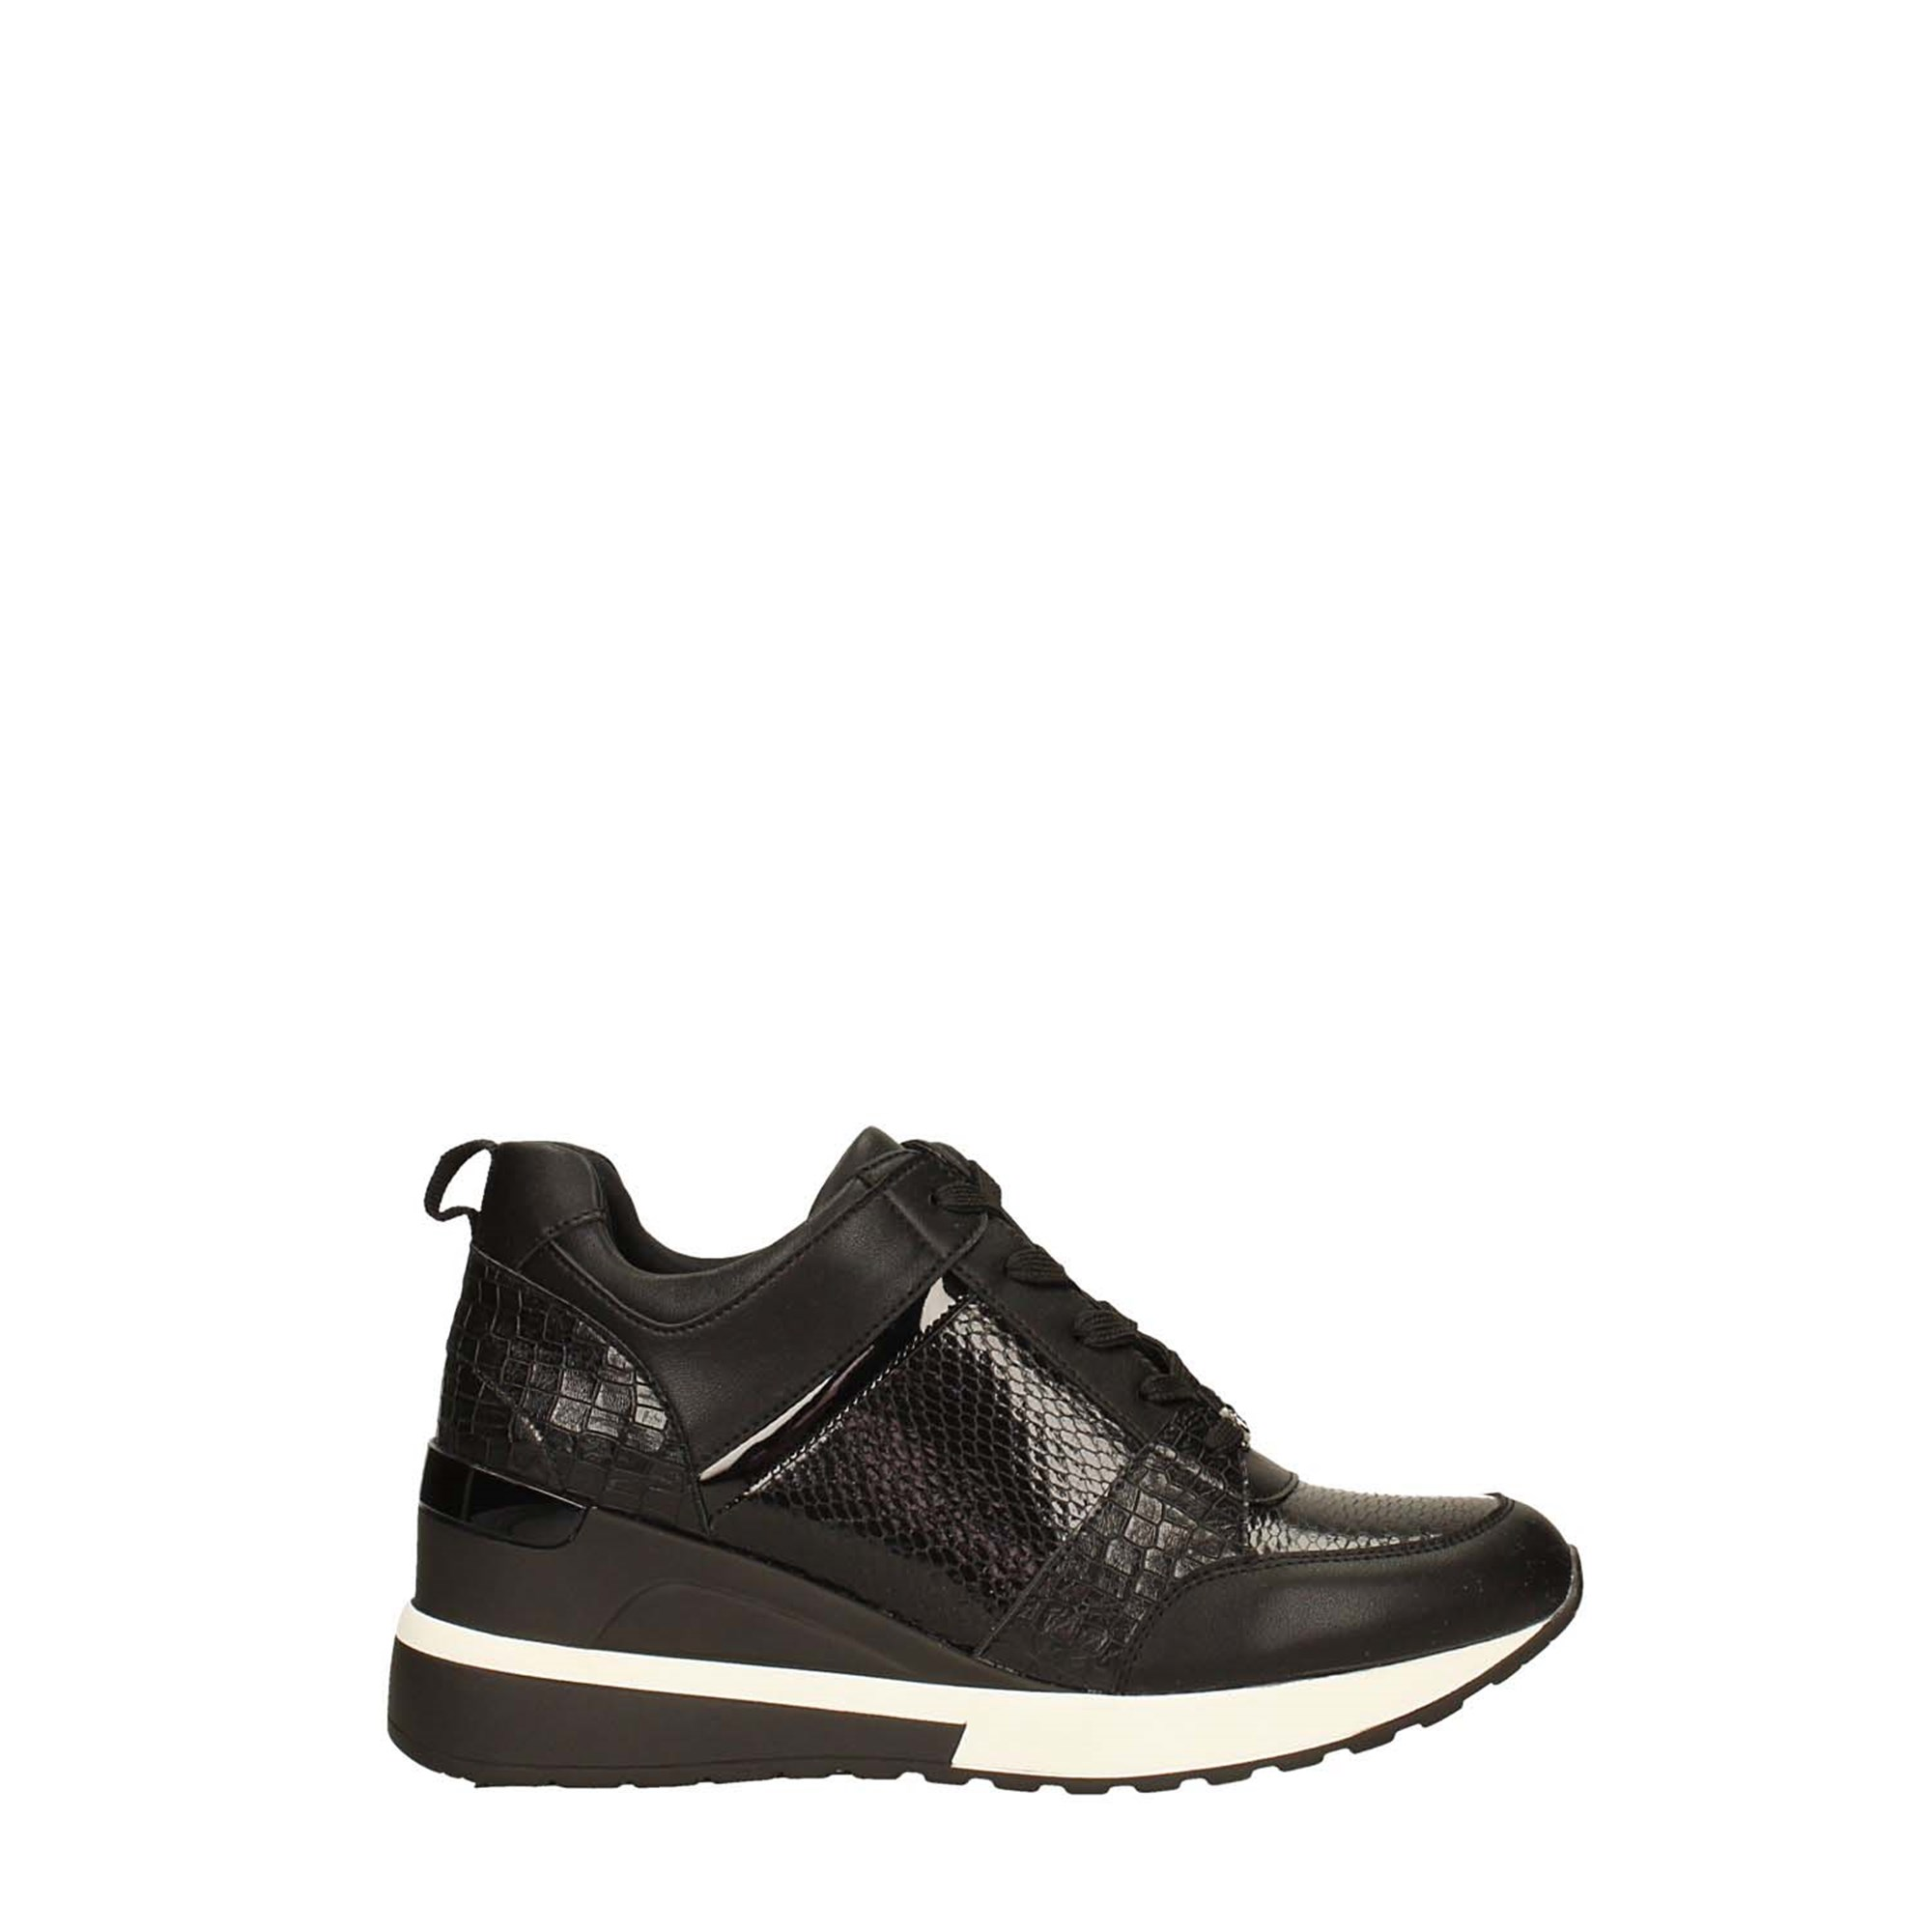 Tata Italia Shoes Woman Sneakers TA22234-20